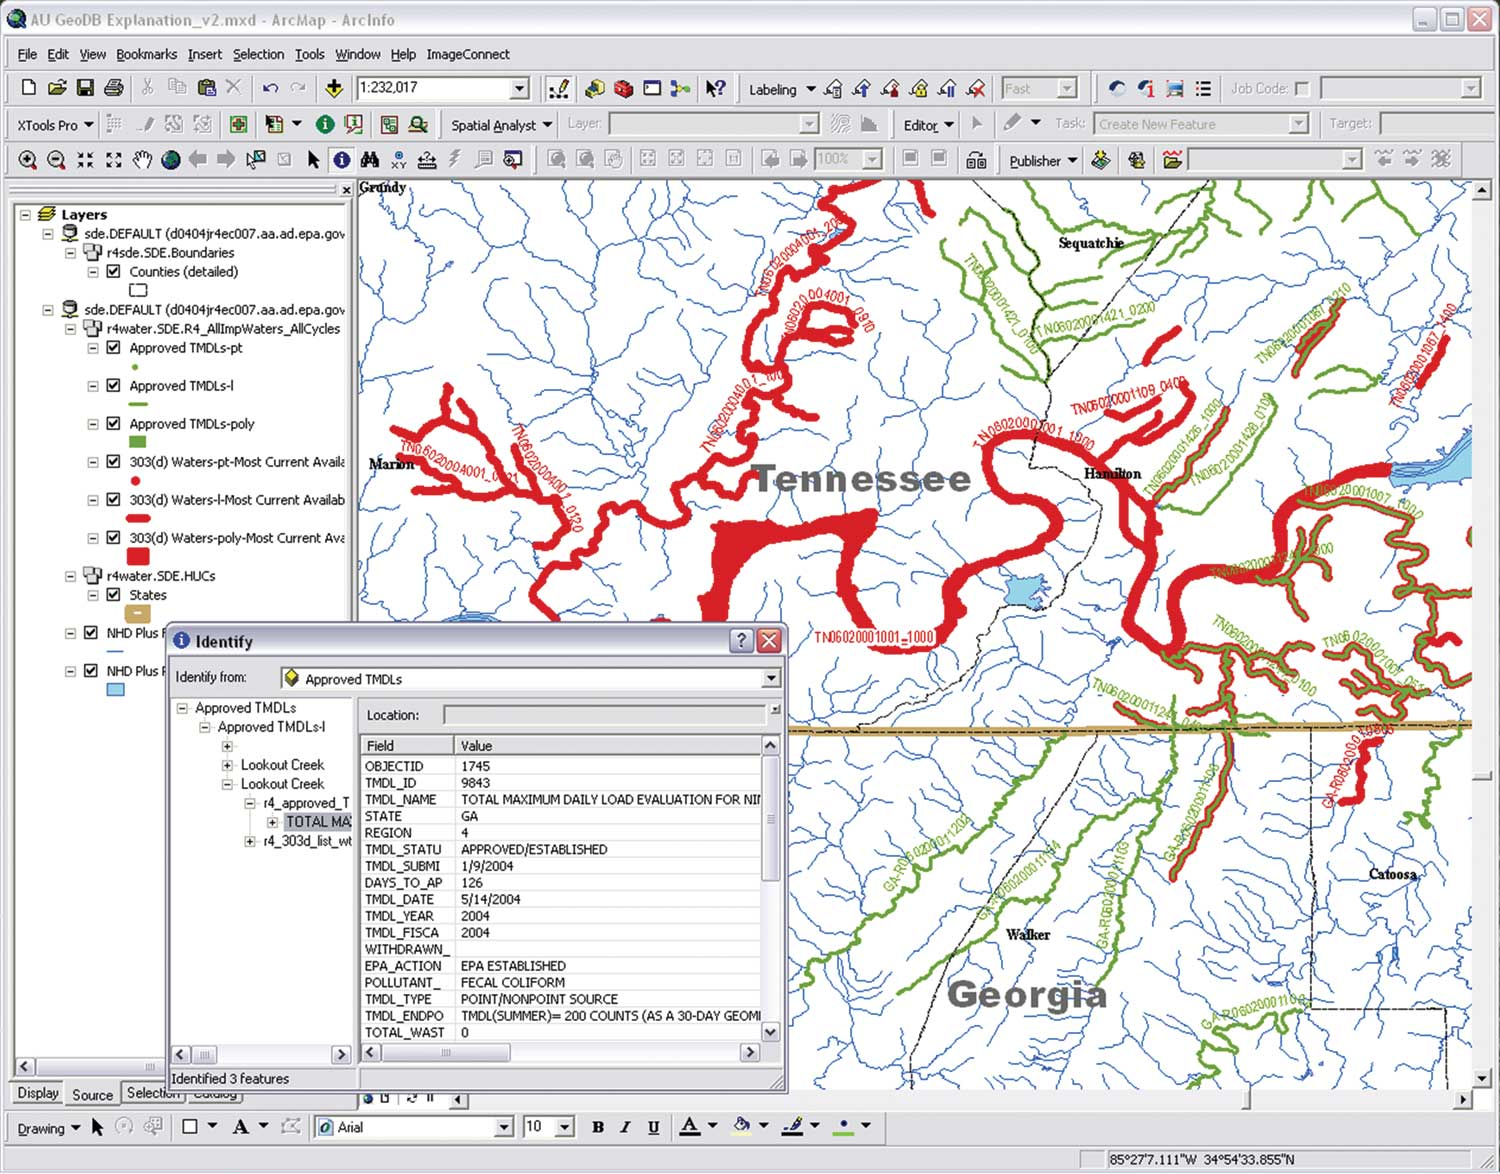 Users Can Use The Identify Tool To Click On A Feature And View Records About Those Features Stored In Related Tables Or Activate The Hyperlink To The Epa